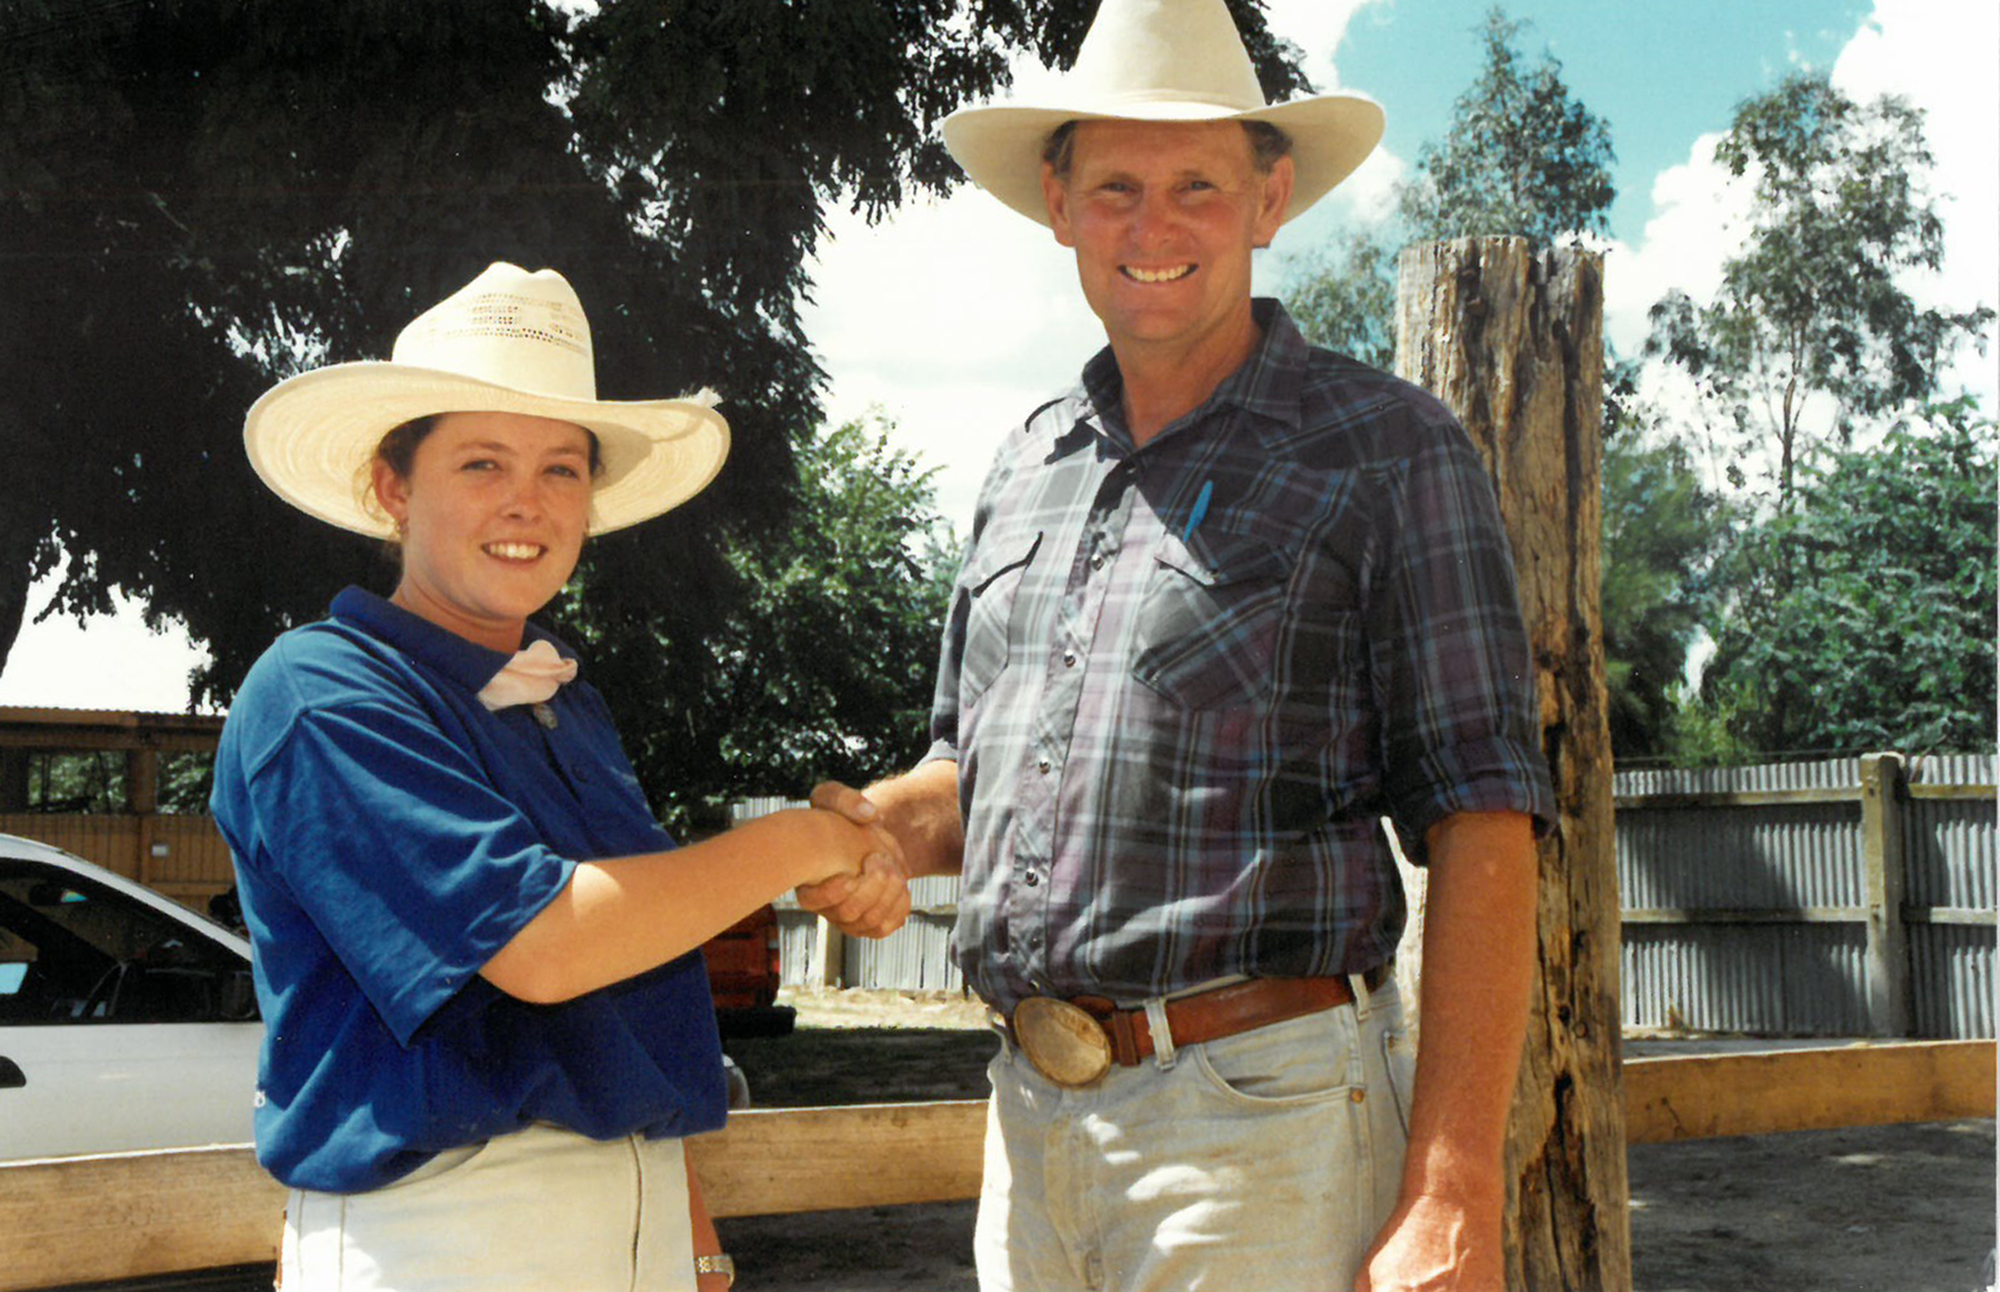 Ewen McLeish with 2001 University of Illinois Scholarship winner Donna Robson, (nee Knox)